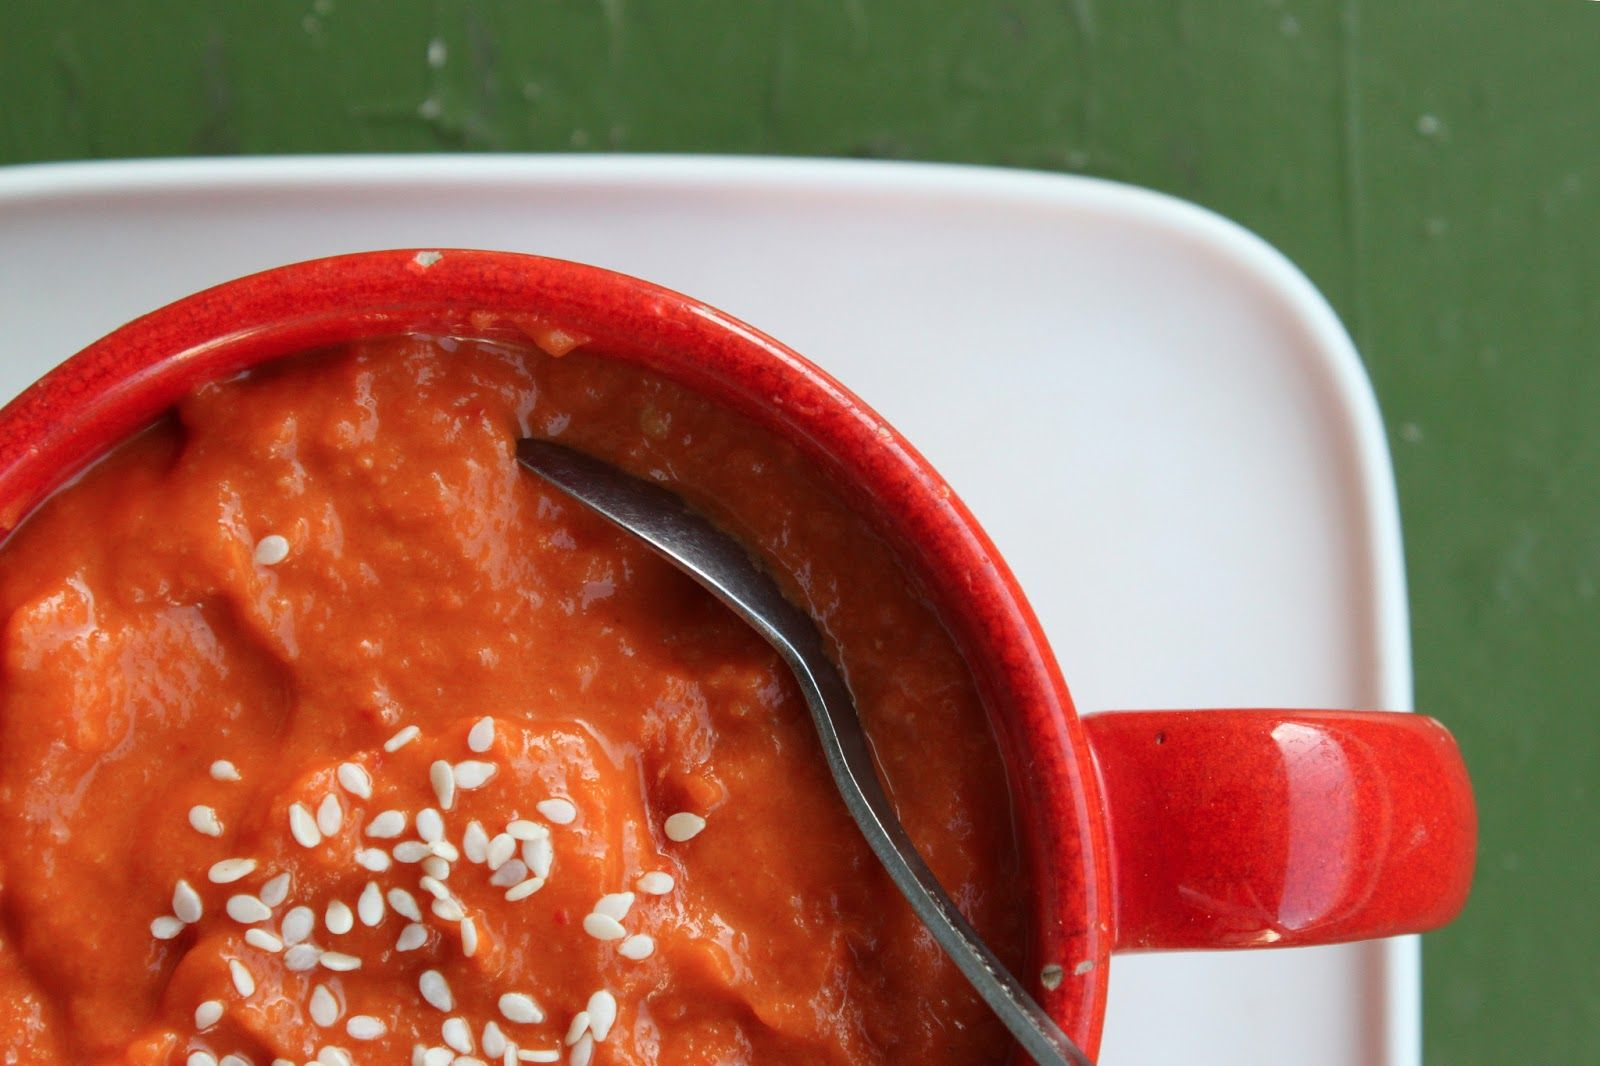 Potluck by one: A soup out of this world